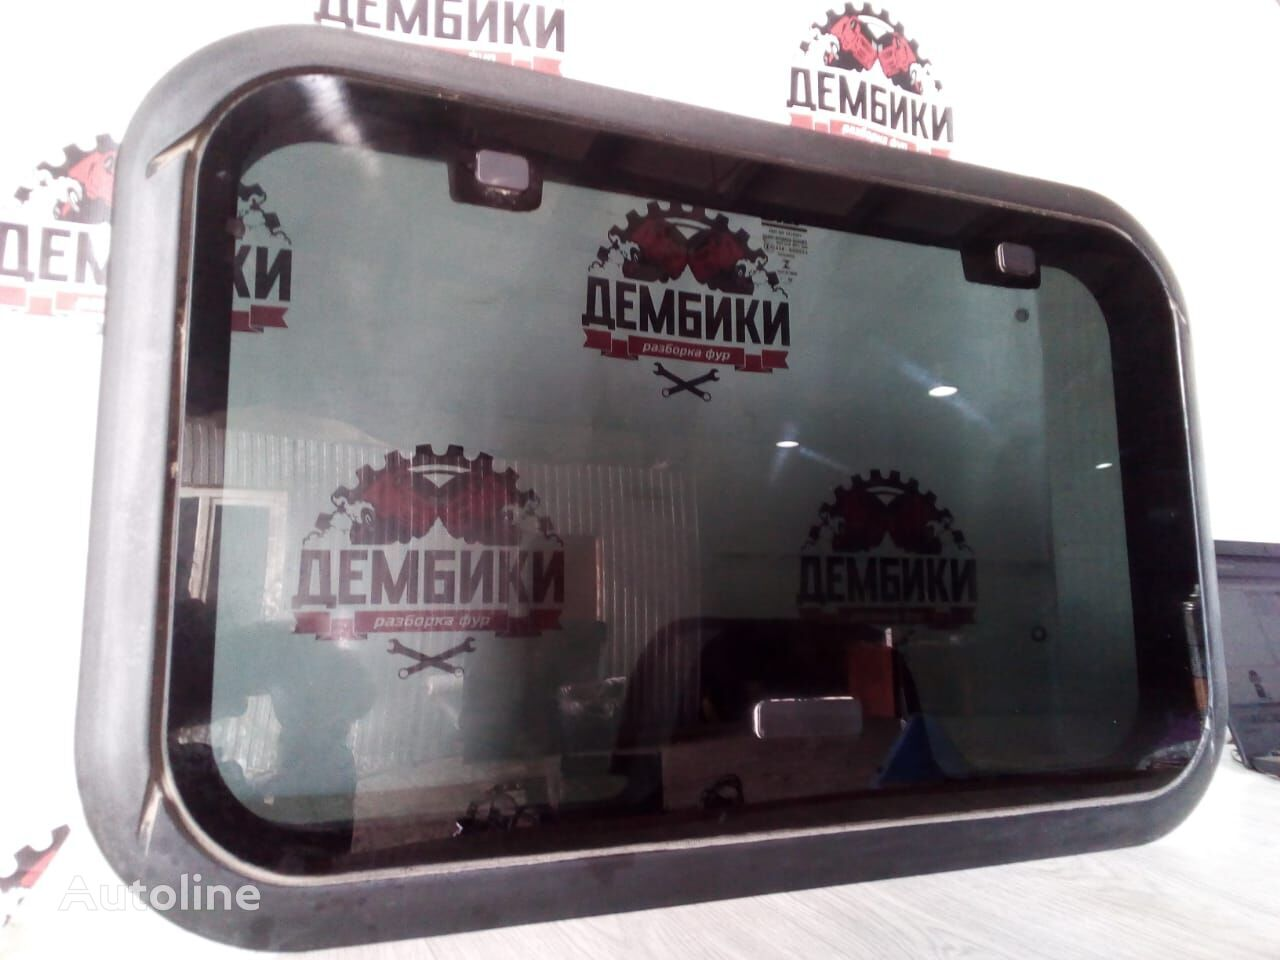 sunroof for DAF XF105 truck